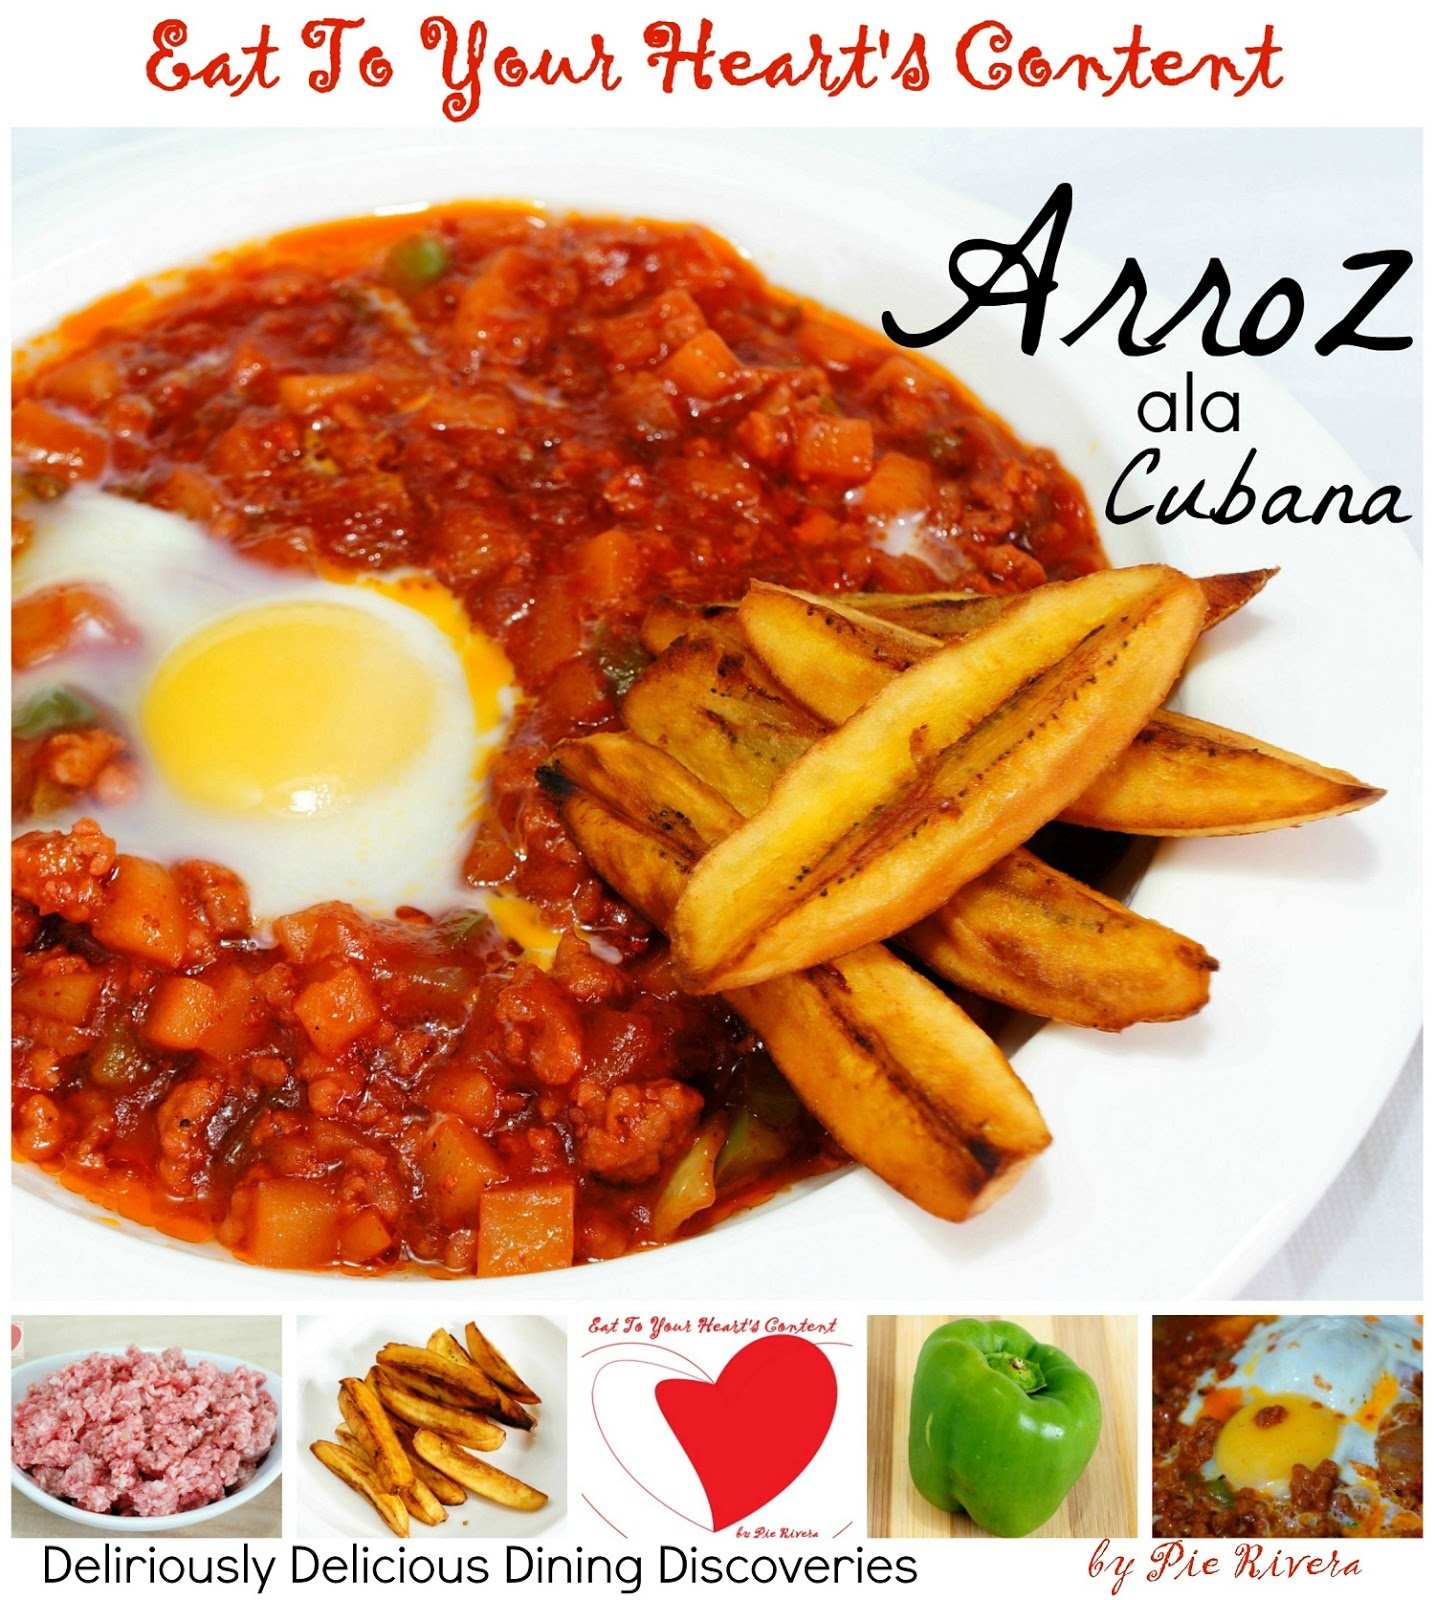 Eat to your hearts content deliriously delicious dining pinoy food recipe arroz ala cubana forumfinder Gallery